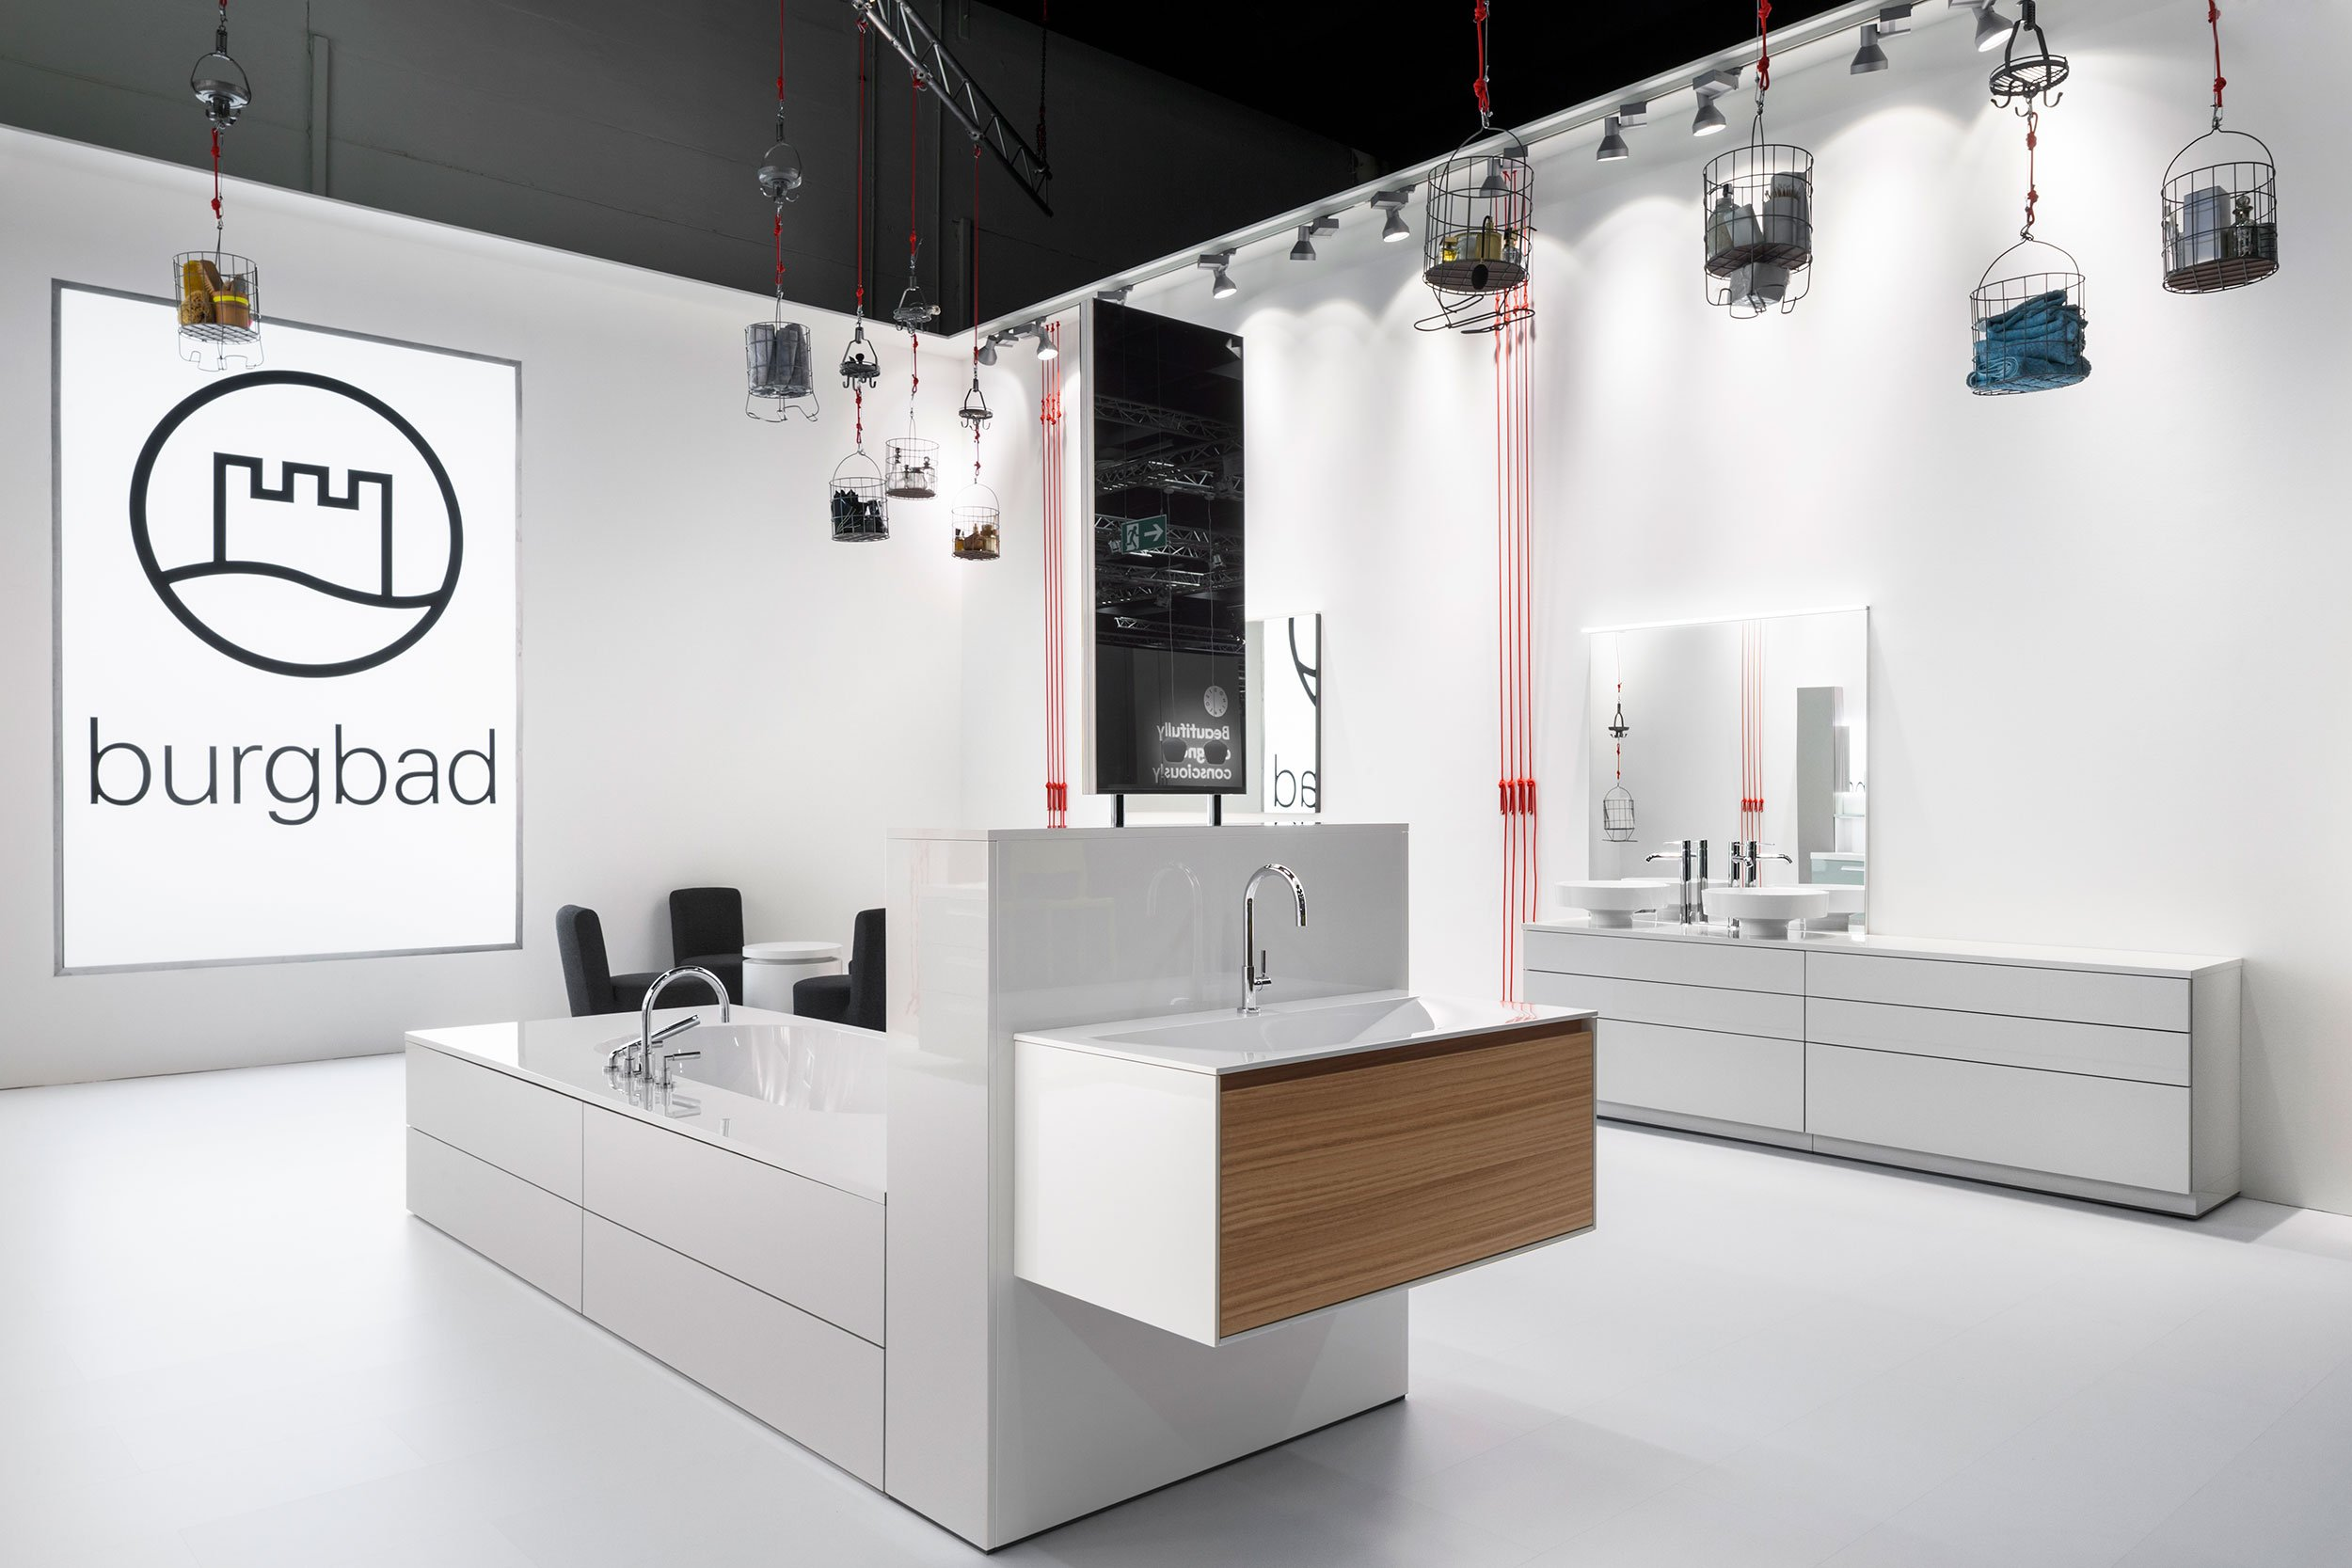 https://farconsulting.de/wp-content/uploads/2020/09/01_Pull_Messestand_burgbad_imm_cologne_2014_FAR.jpg